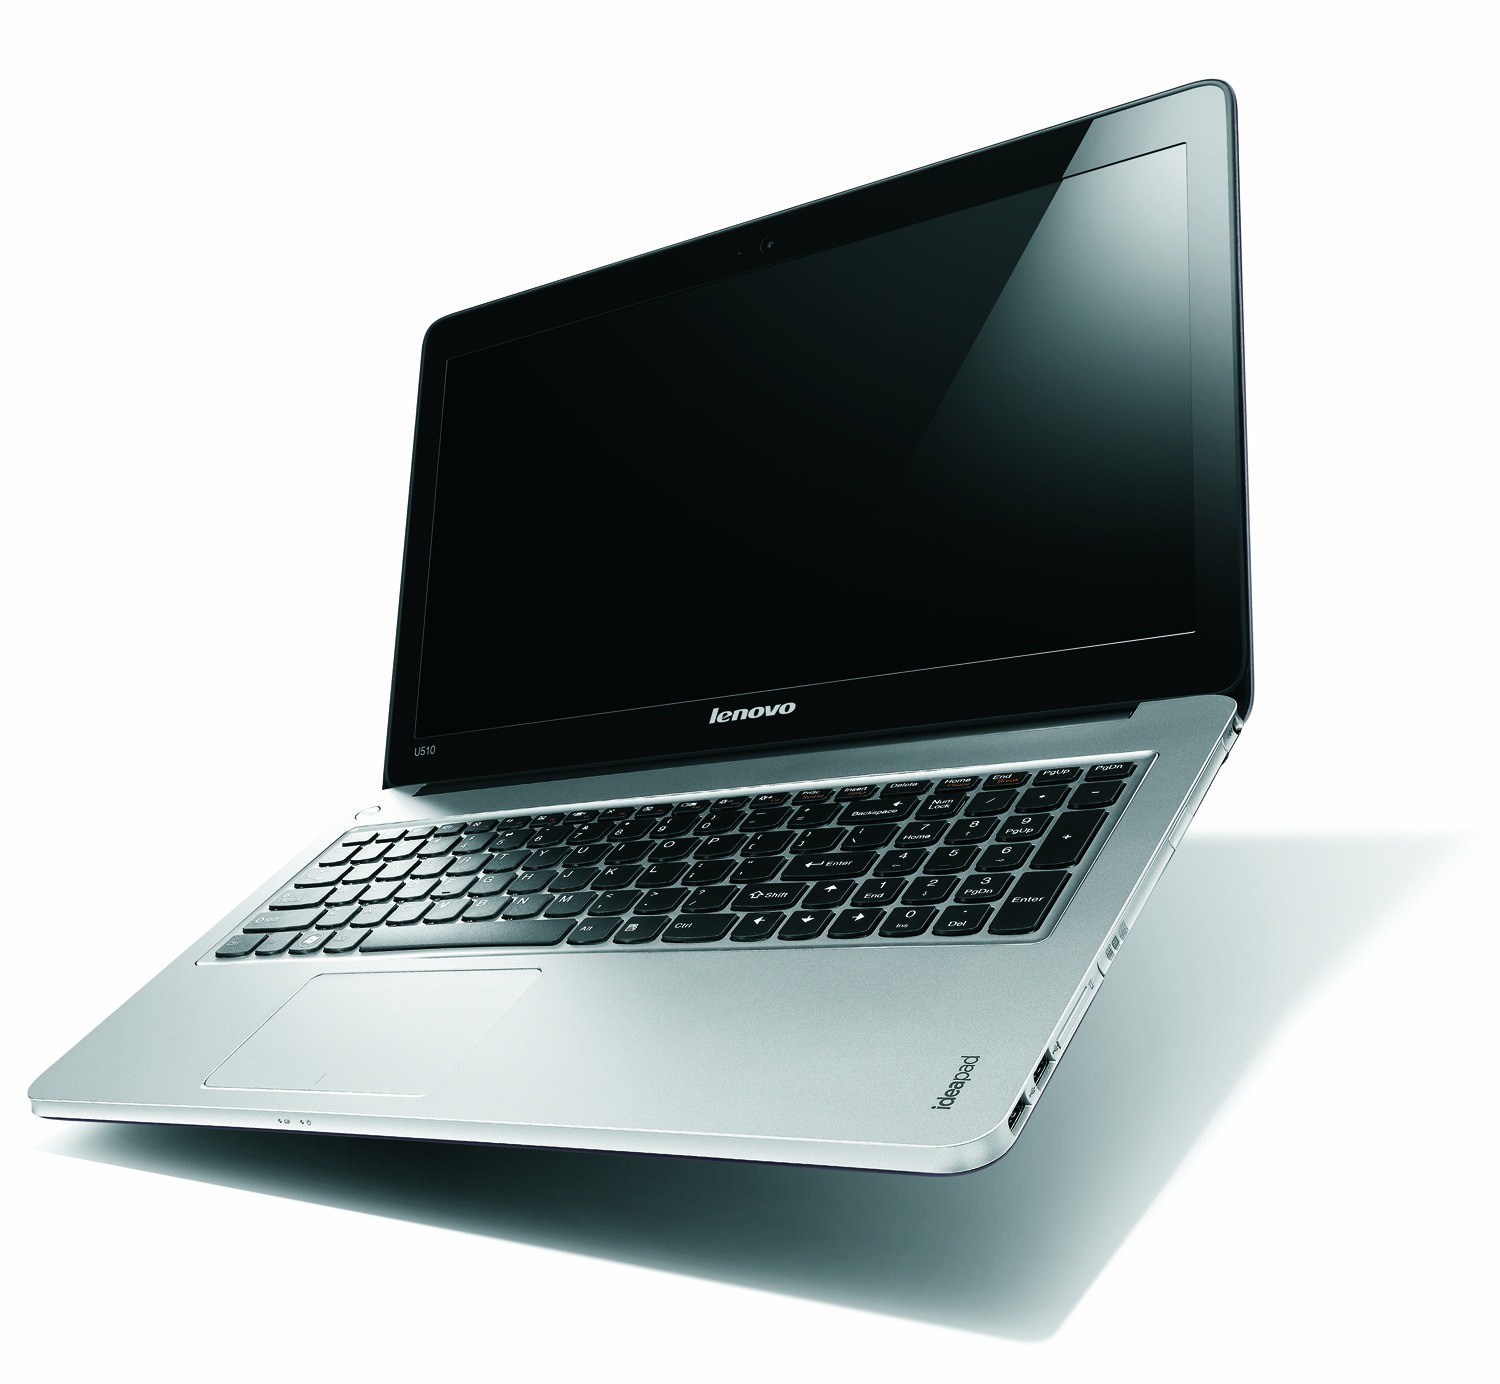 Lenovo Announces Windows 8 Ultrabooks  All-in-one Pcs - Bonnie Cha - Product News